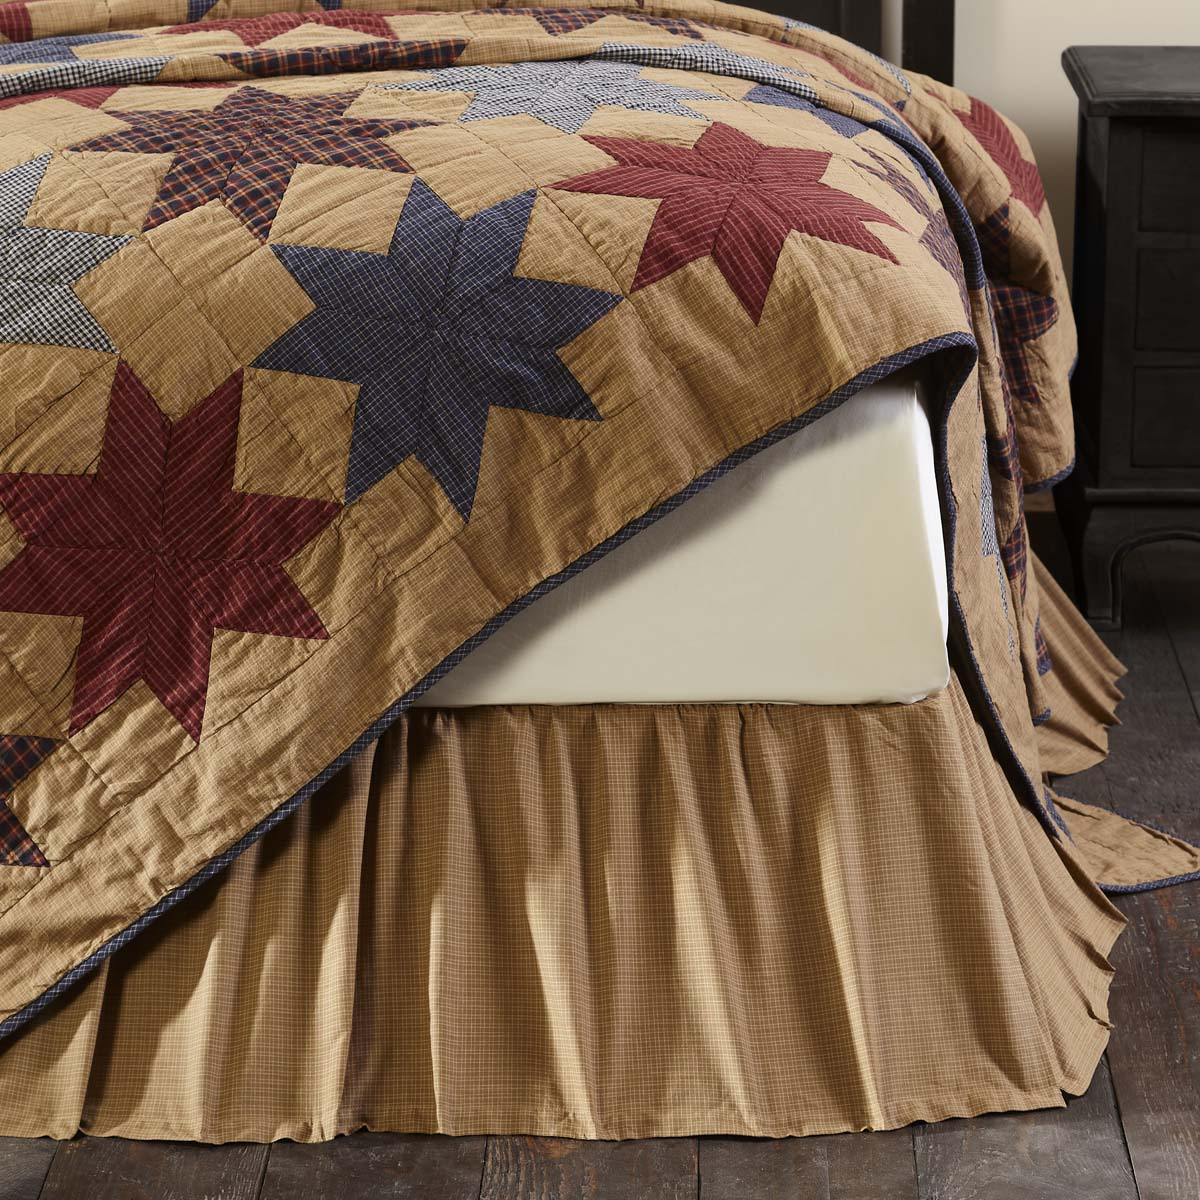 Kindred Star Twin Bed Skirt 39x76x16